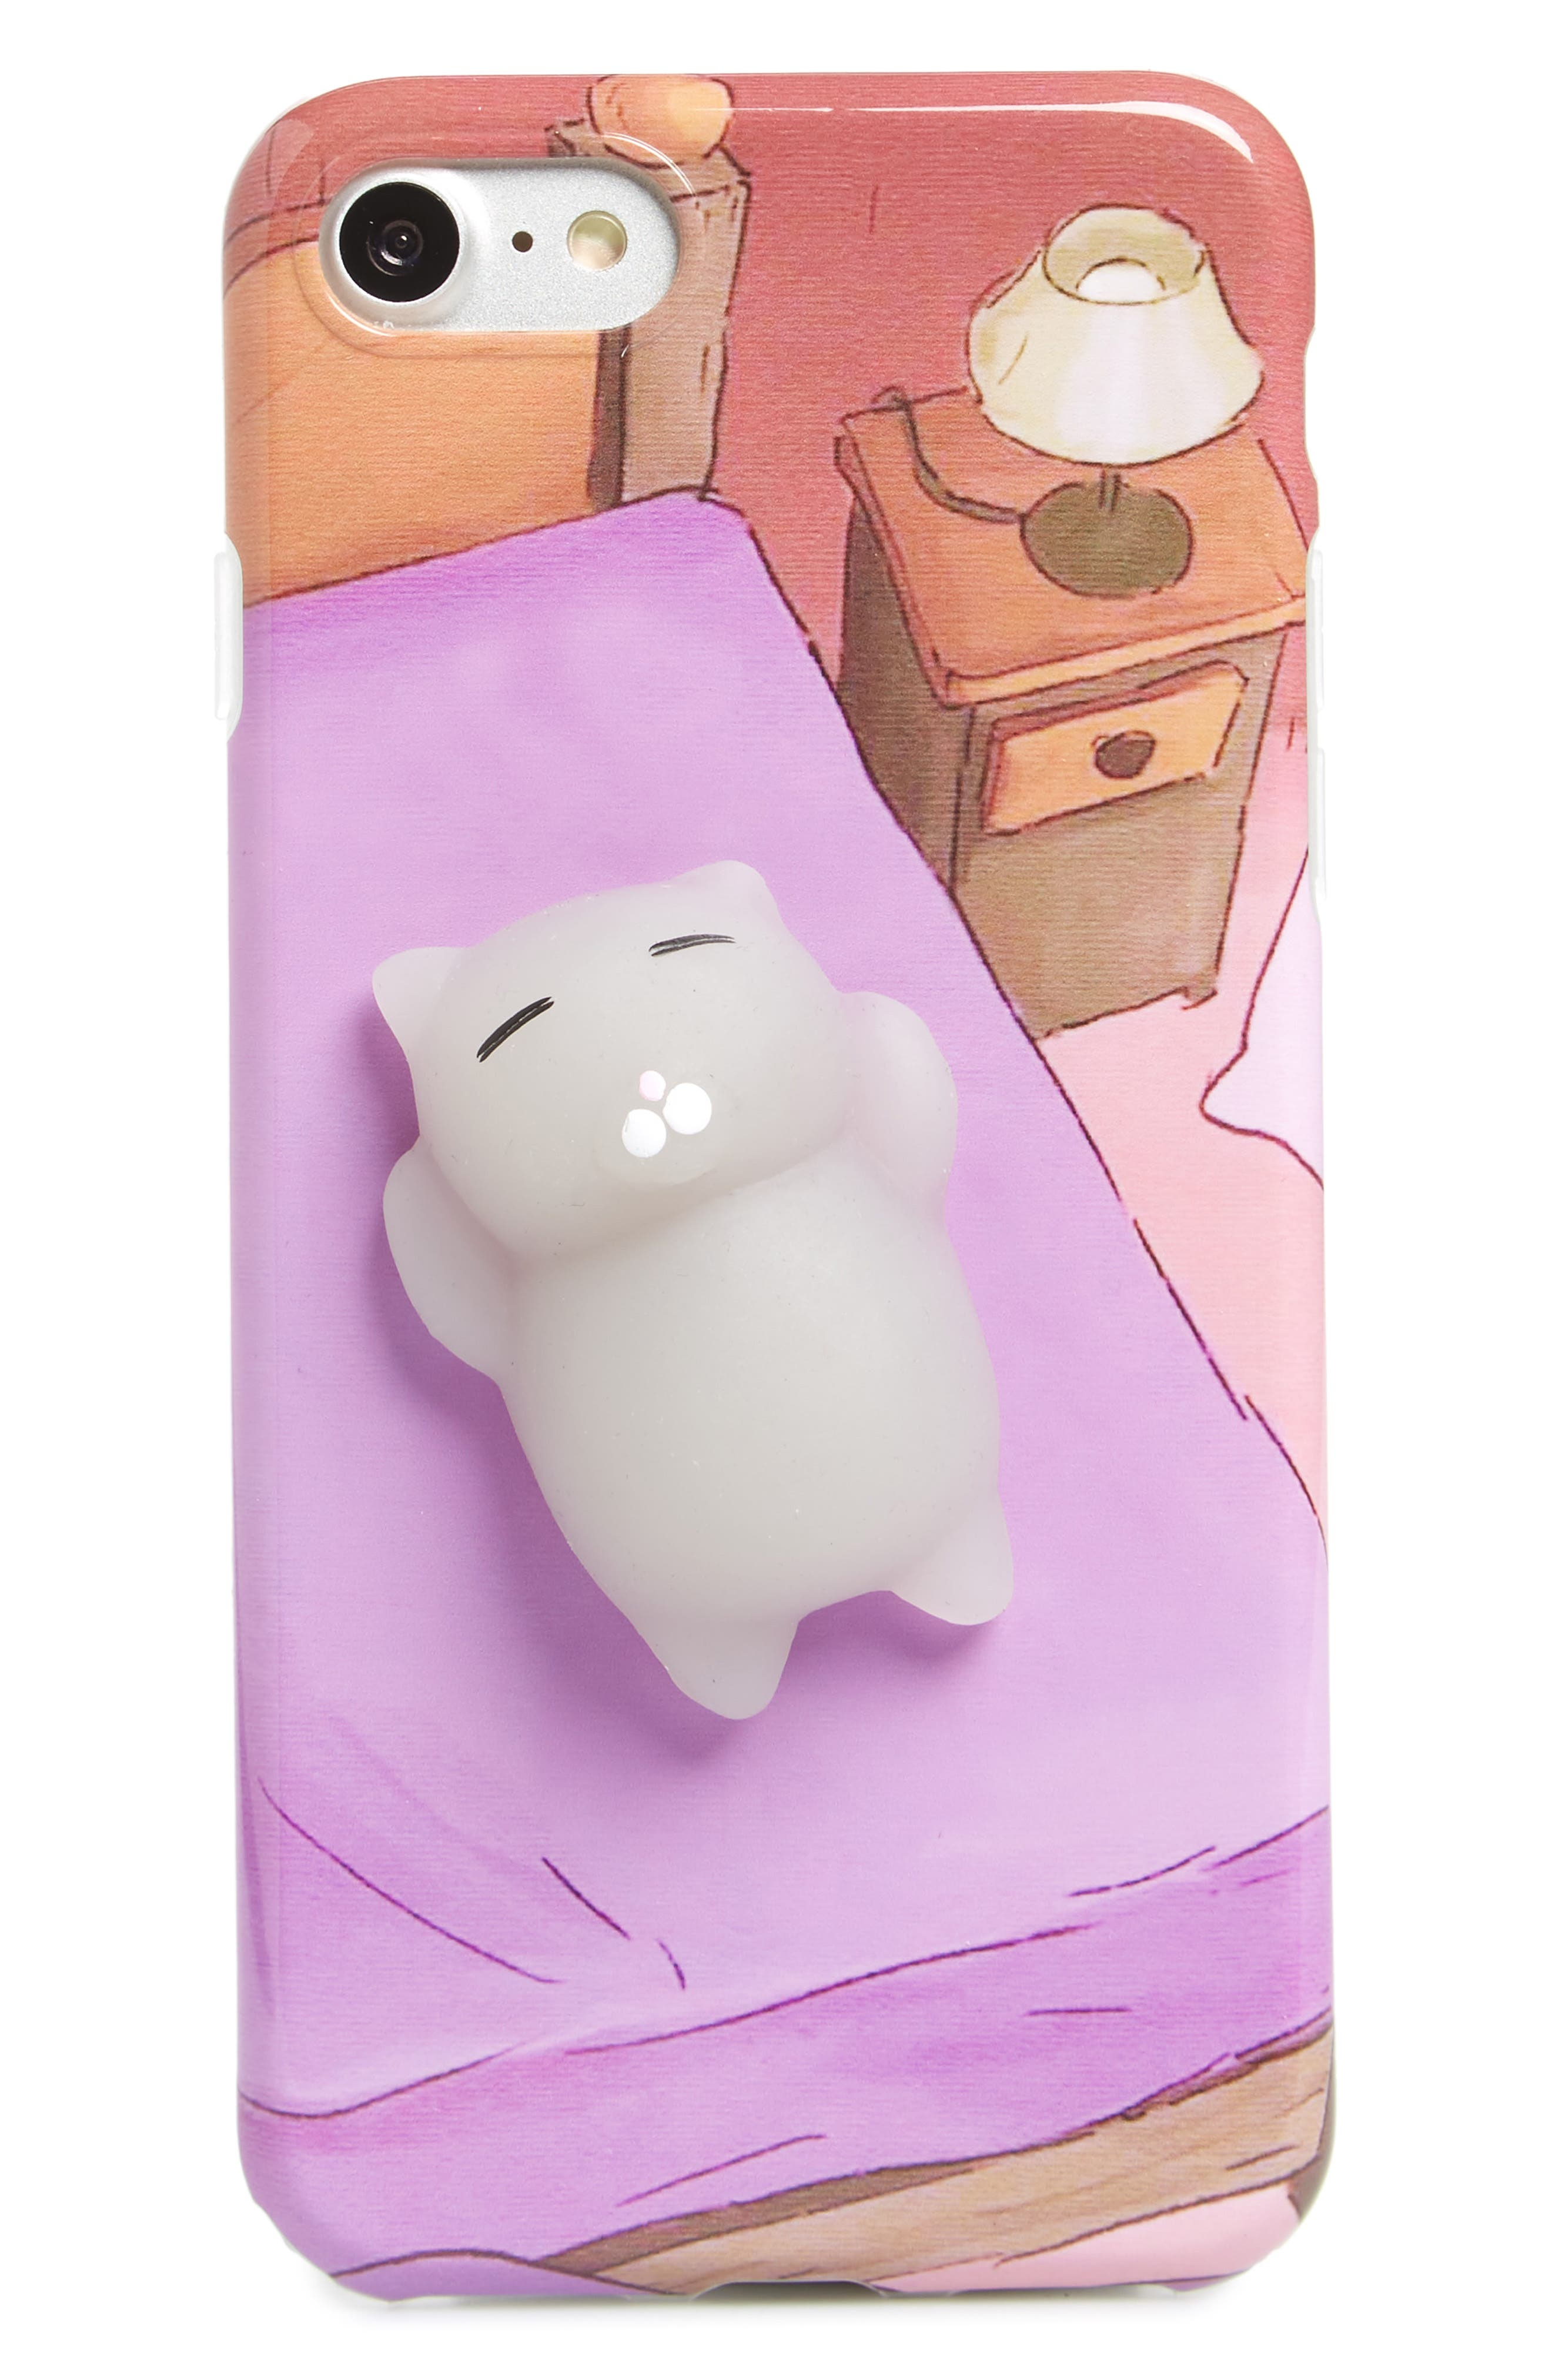 Squishy Cat in Bed iPhone 7/8 Case,                             Main thumbnail 1, color,                             Purple Multi